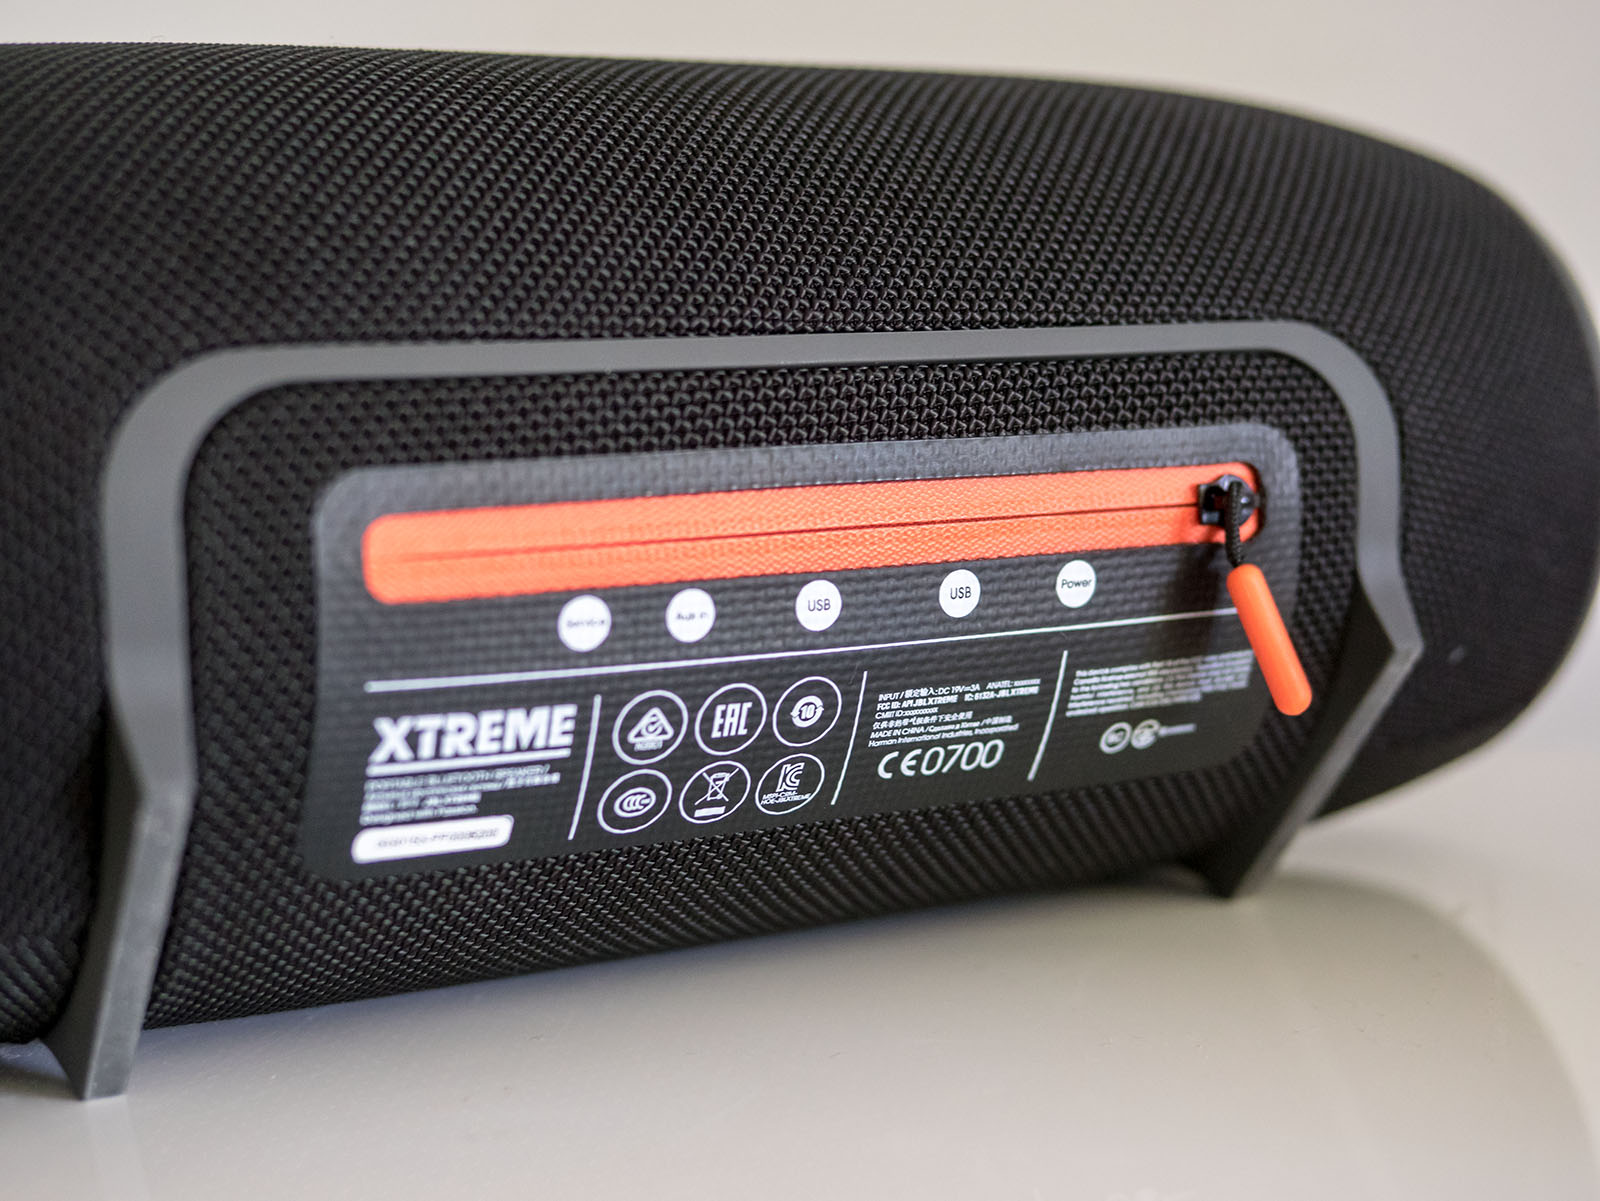 School bag riddim zip - The Battery Indicator Migrated To The Front At The Bottom Now So At Least You Don T Need To Turn The Speaker Around To Check Battery Status And Unlike The